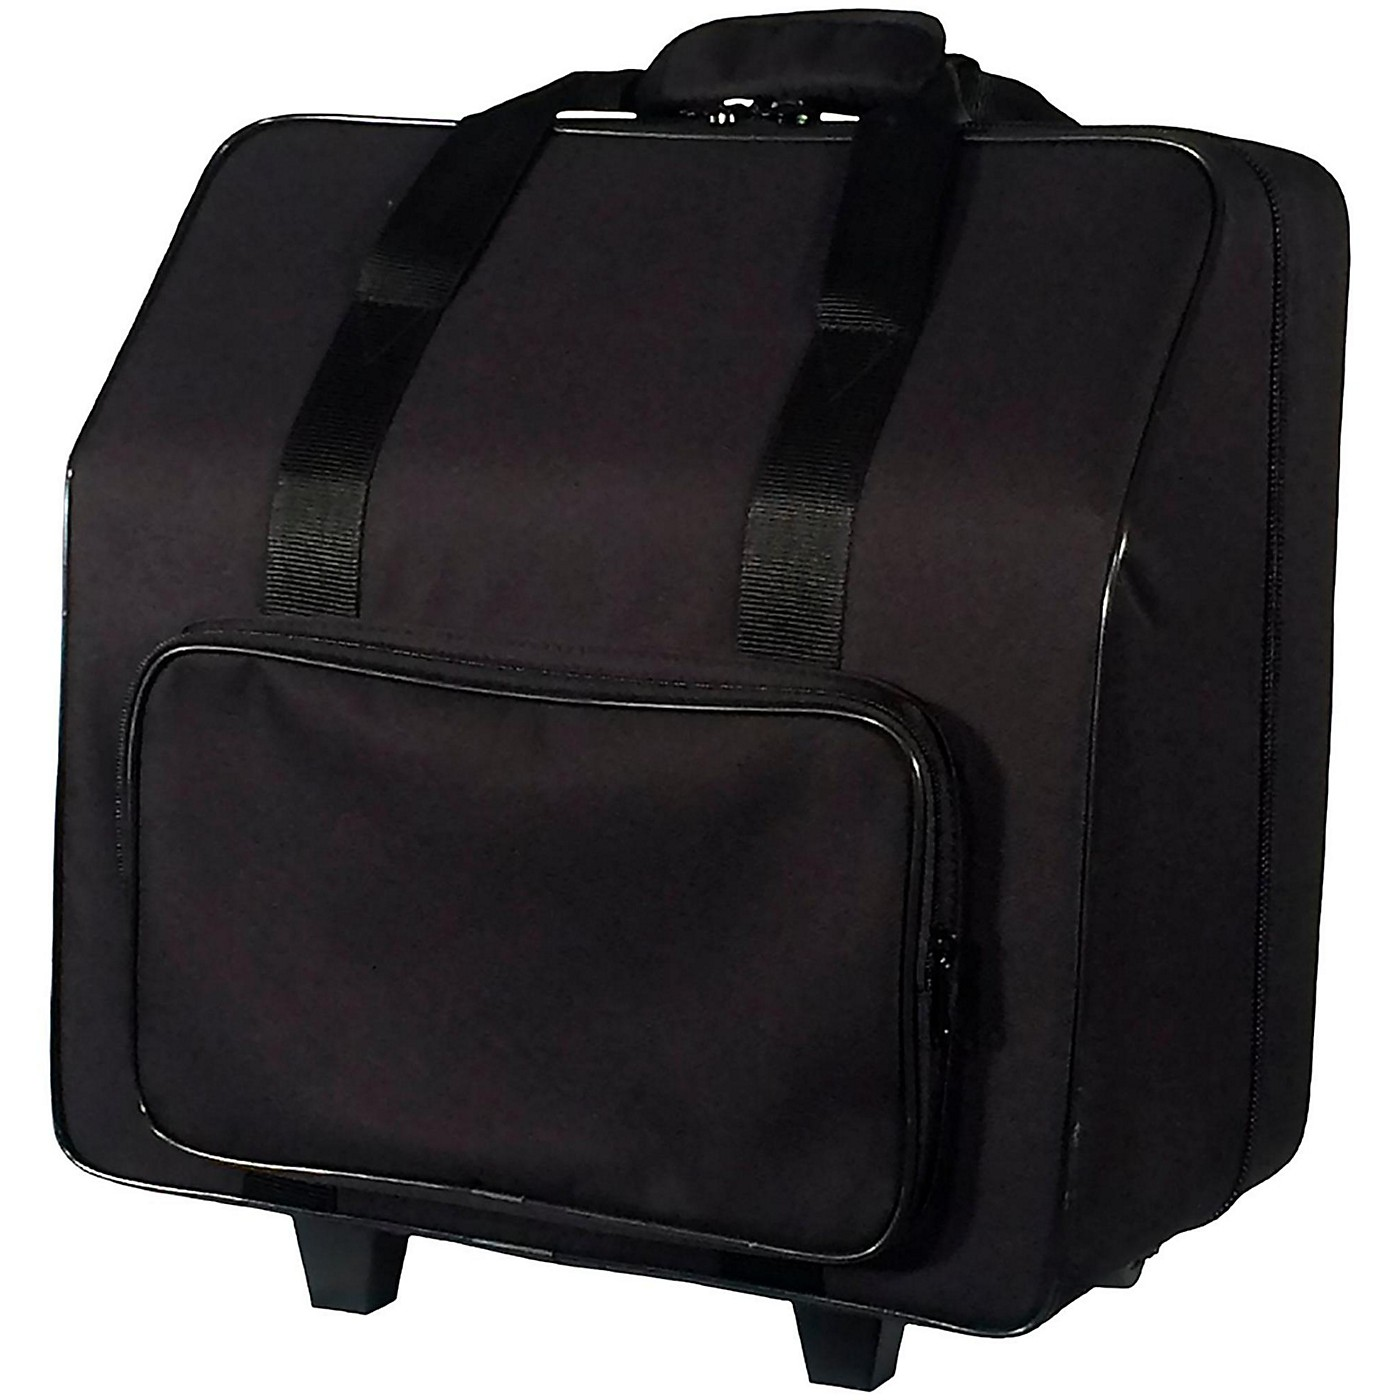 Sofiamari NAC-3112 Trolly Accordion Case with Telescopic Handle thumbnail